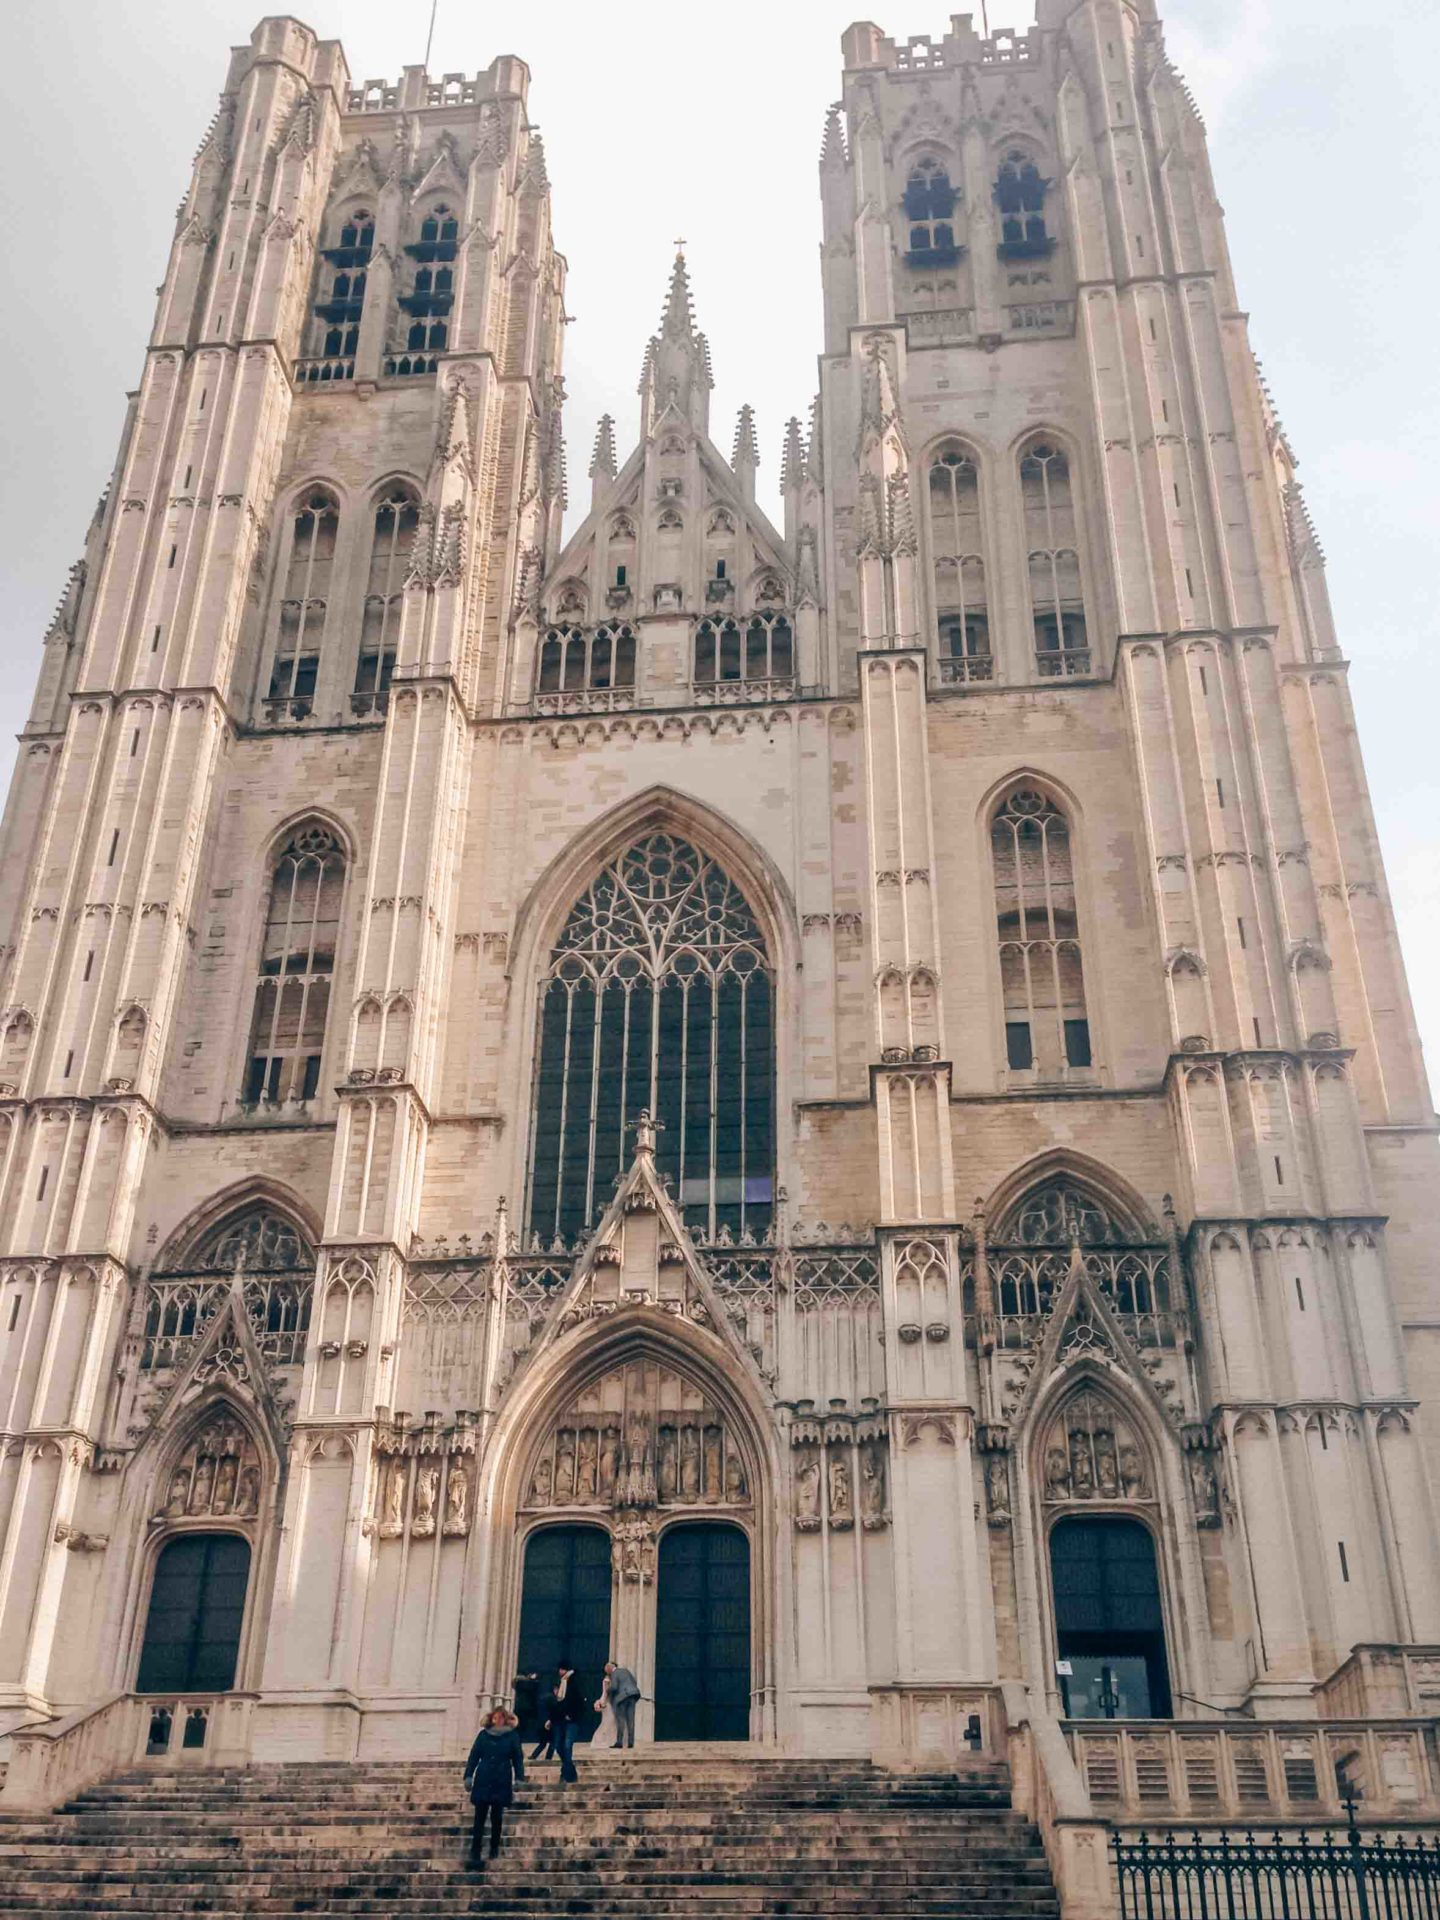 Brussels cathedrals is among the best things to do on a weekend